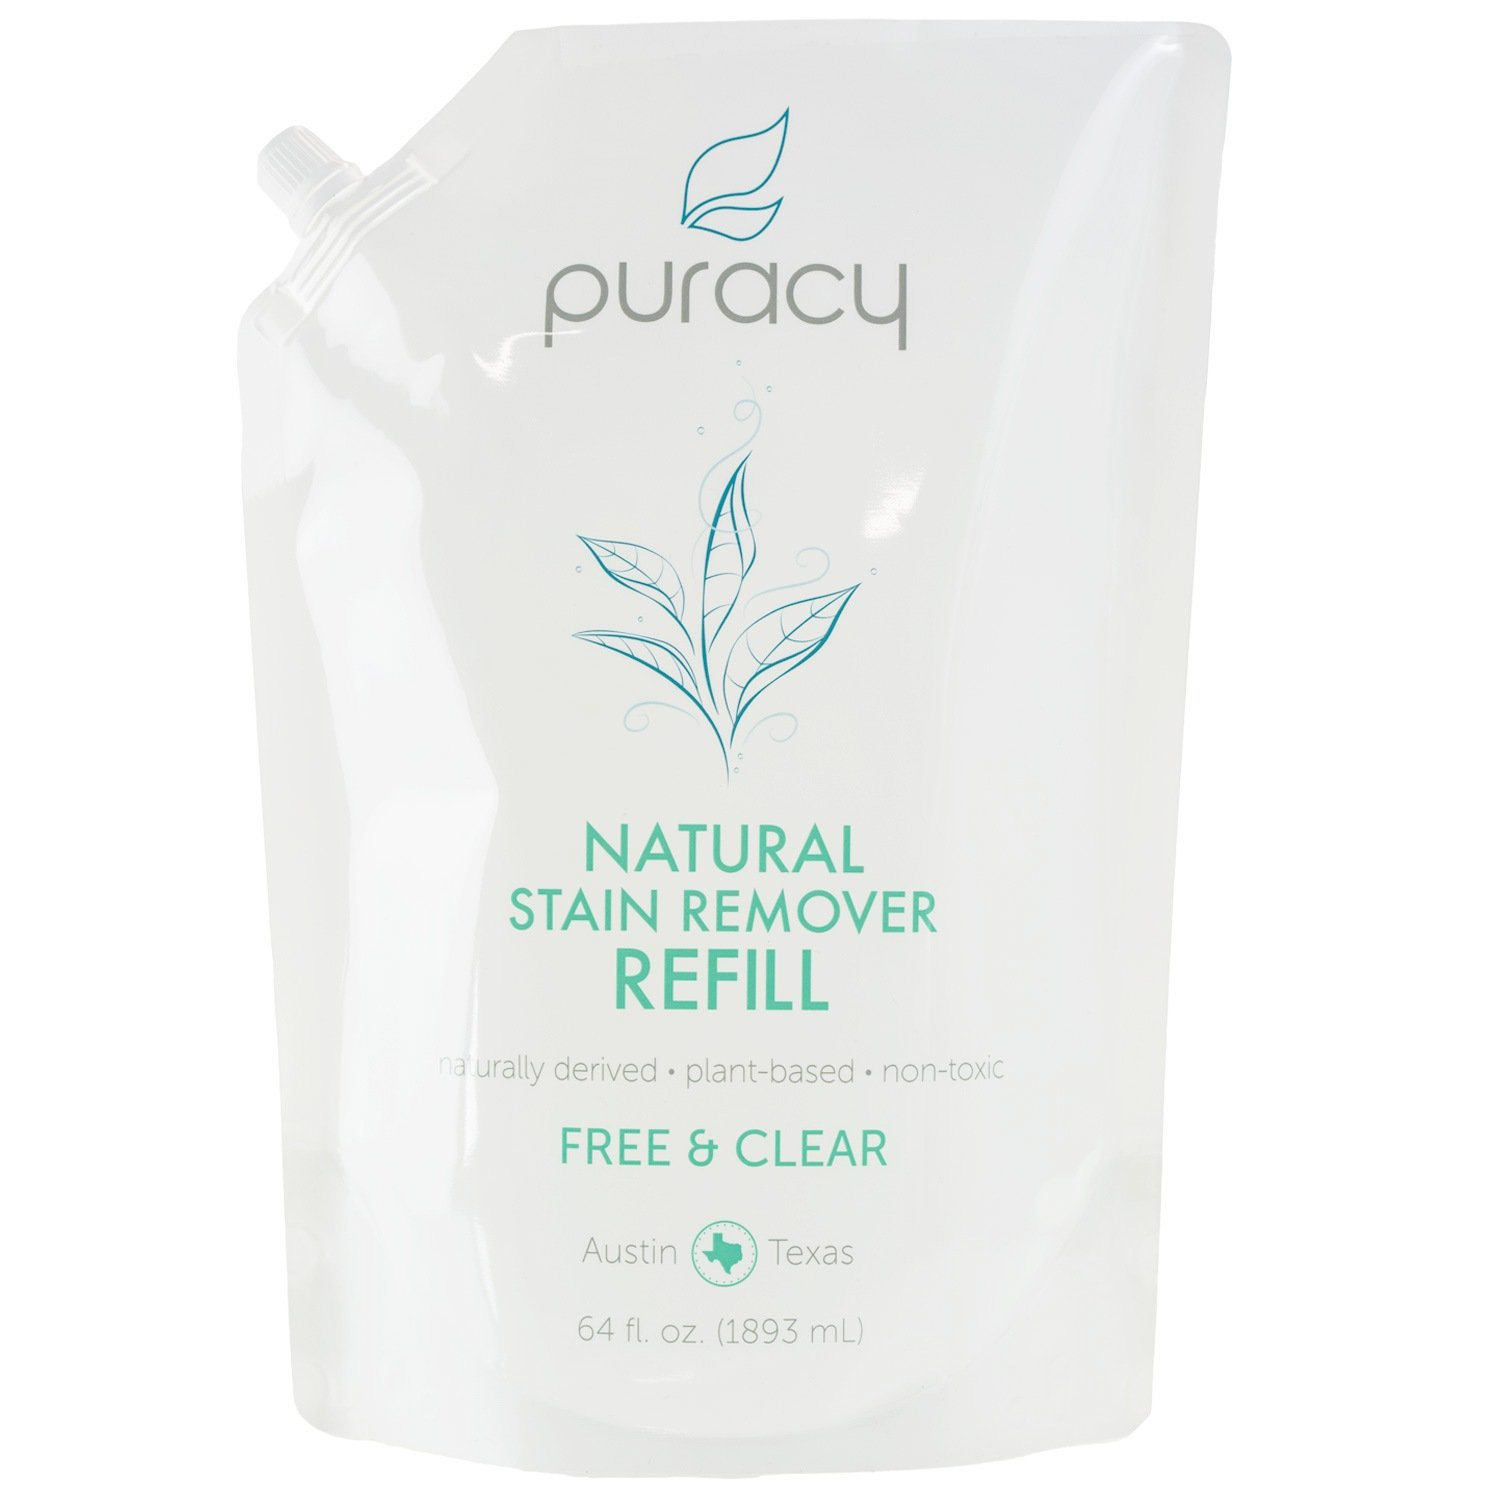 Puracy Natural Laundry Stain Remover Refill, [64 Oz], 6-Enzyme Formula Eliminates Spots and Odors, Pre-Treat Thousands of Fabrics, Free and Clear, 64 Fluid Ounce Pouch